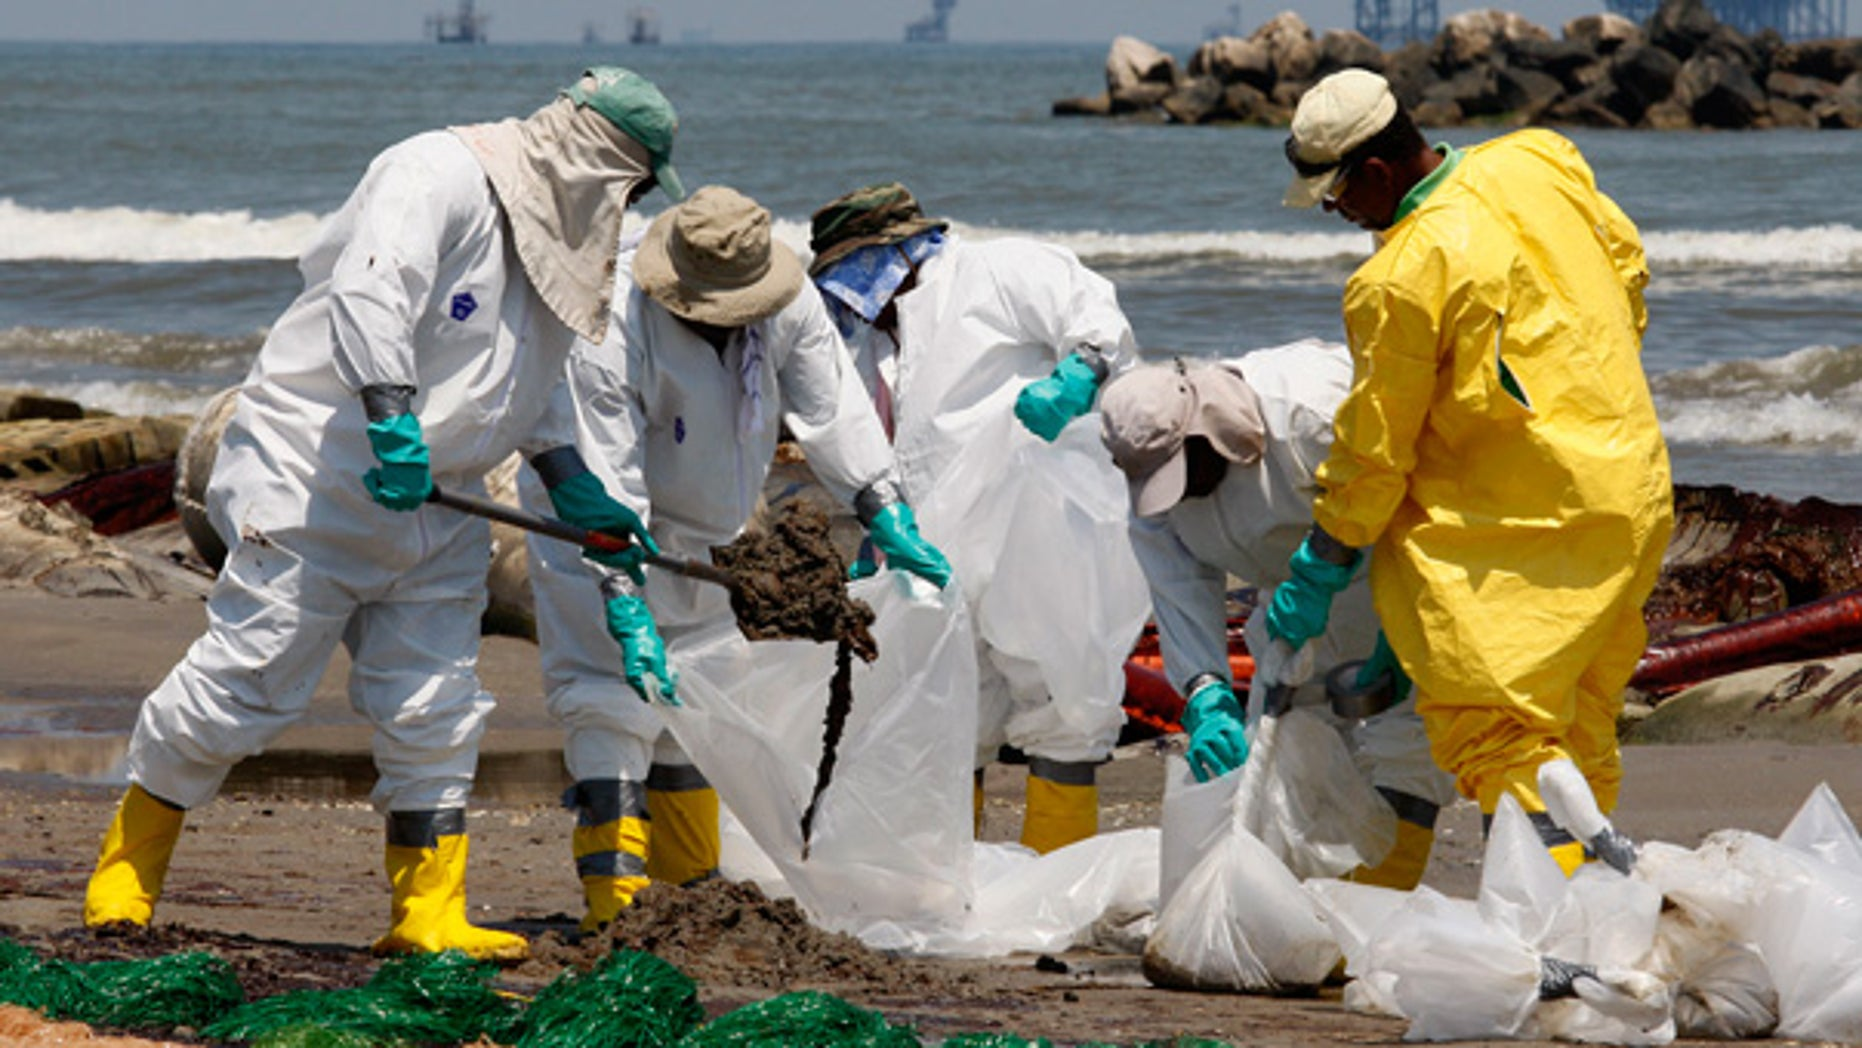 May 24: Workers shovel oil from the Deepwater Horizon spill off Fourchon Beach in Port Fourchon, La.